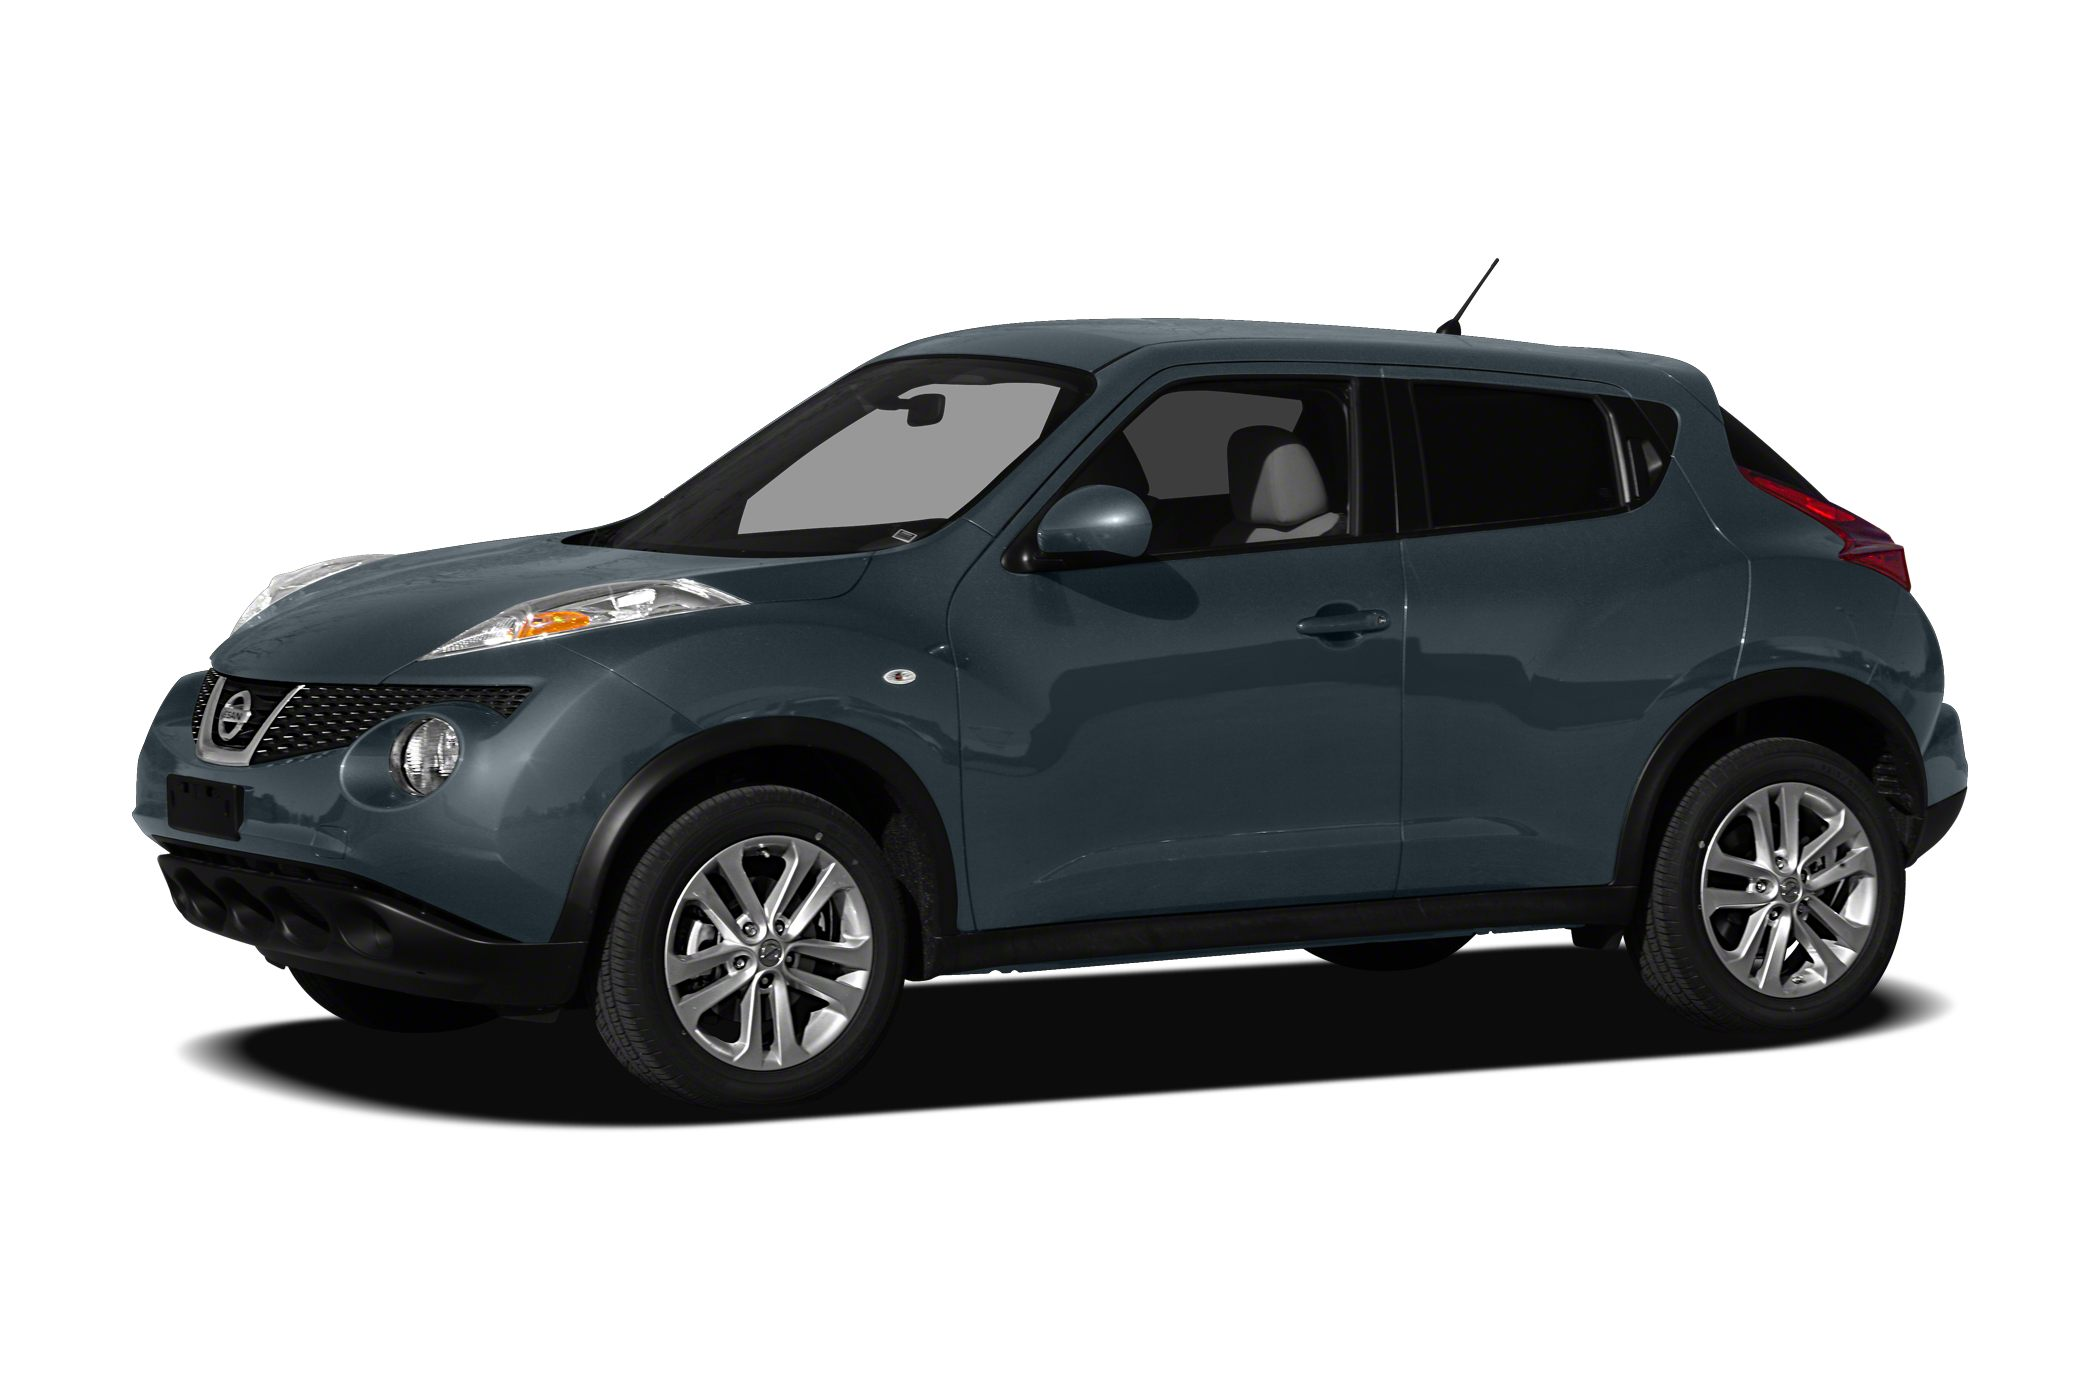 2012 Nissan Juke S SUV for sale in Muncy for $16,988 with 61,808 miles